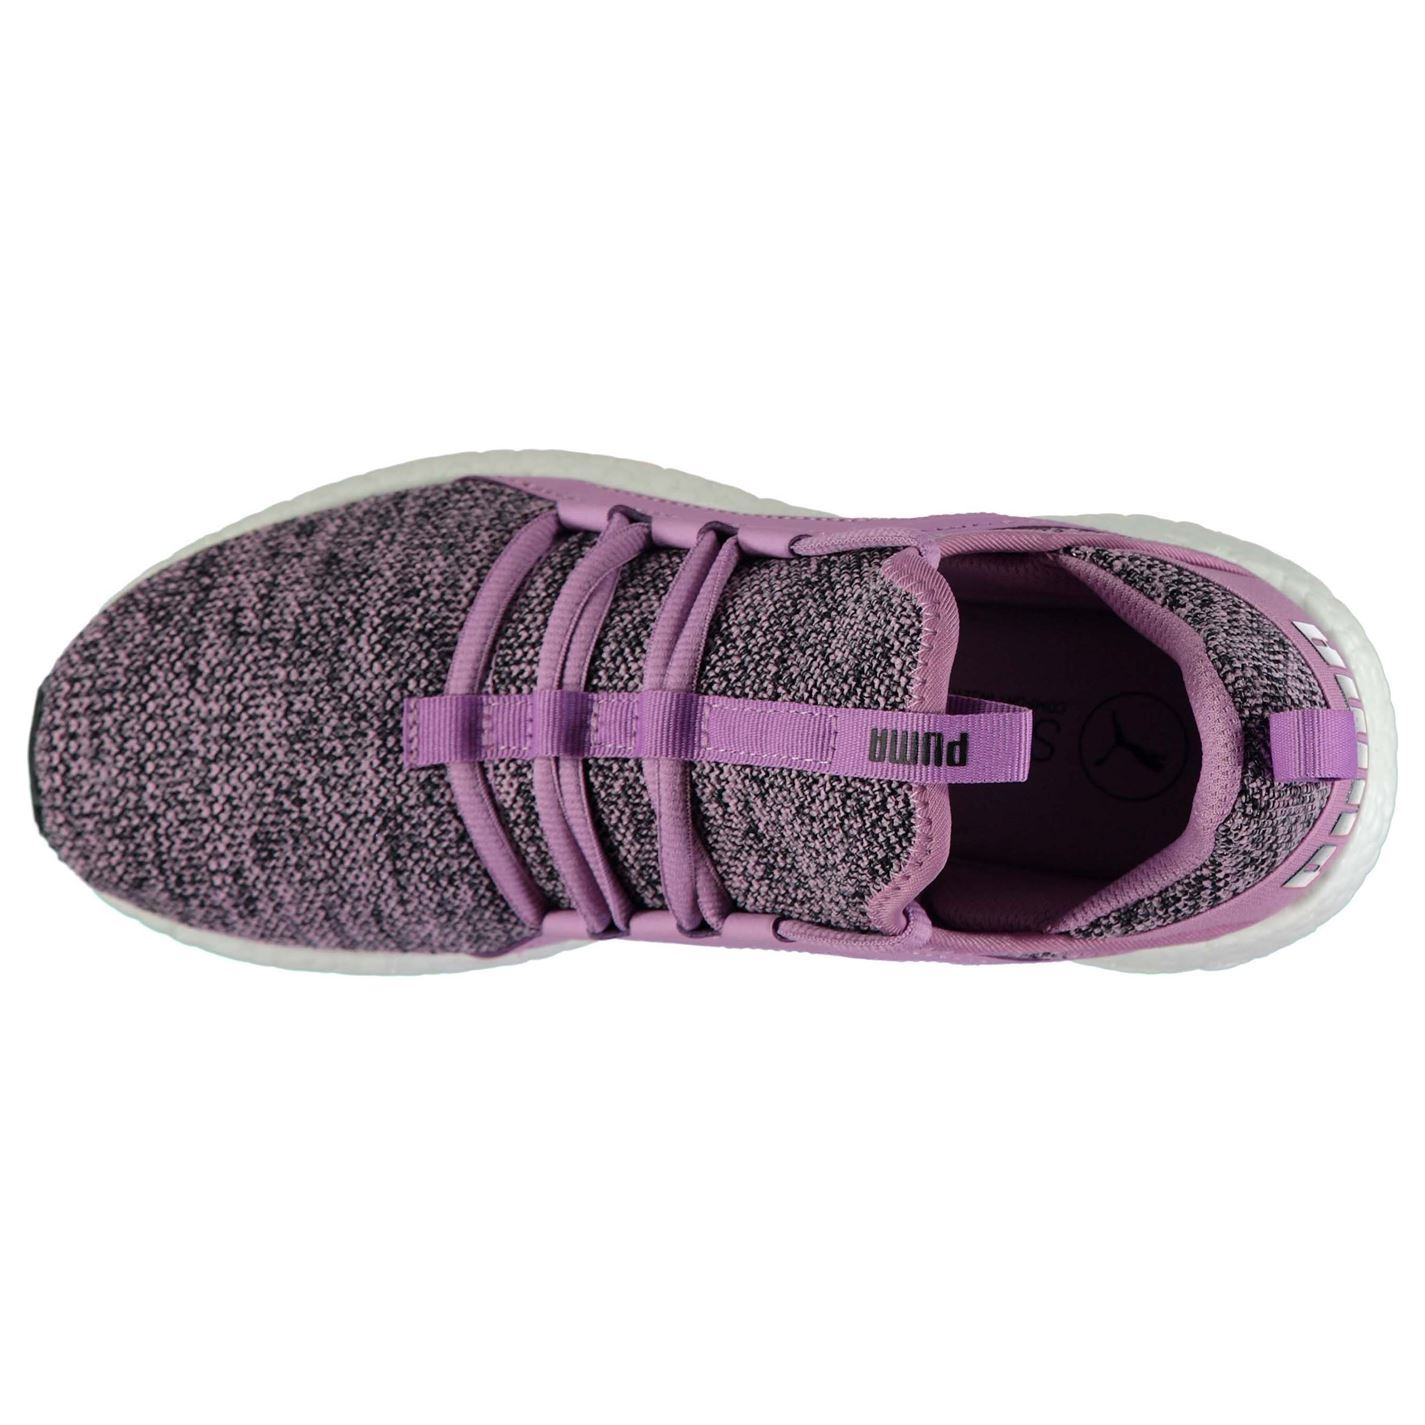 cf6f846bbd6285 ... Puma Mega NRGY Knit Running Shoes Womens Purple Run Jogging Trainers  Sneakers